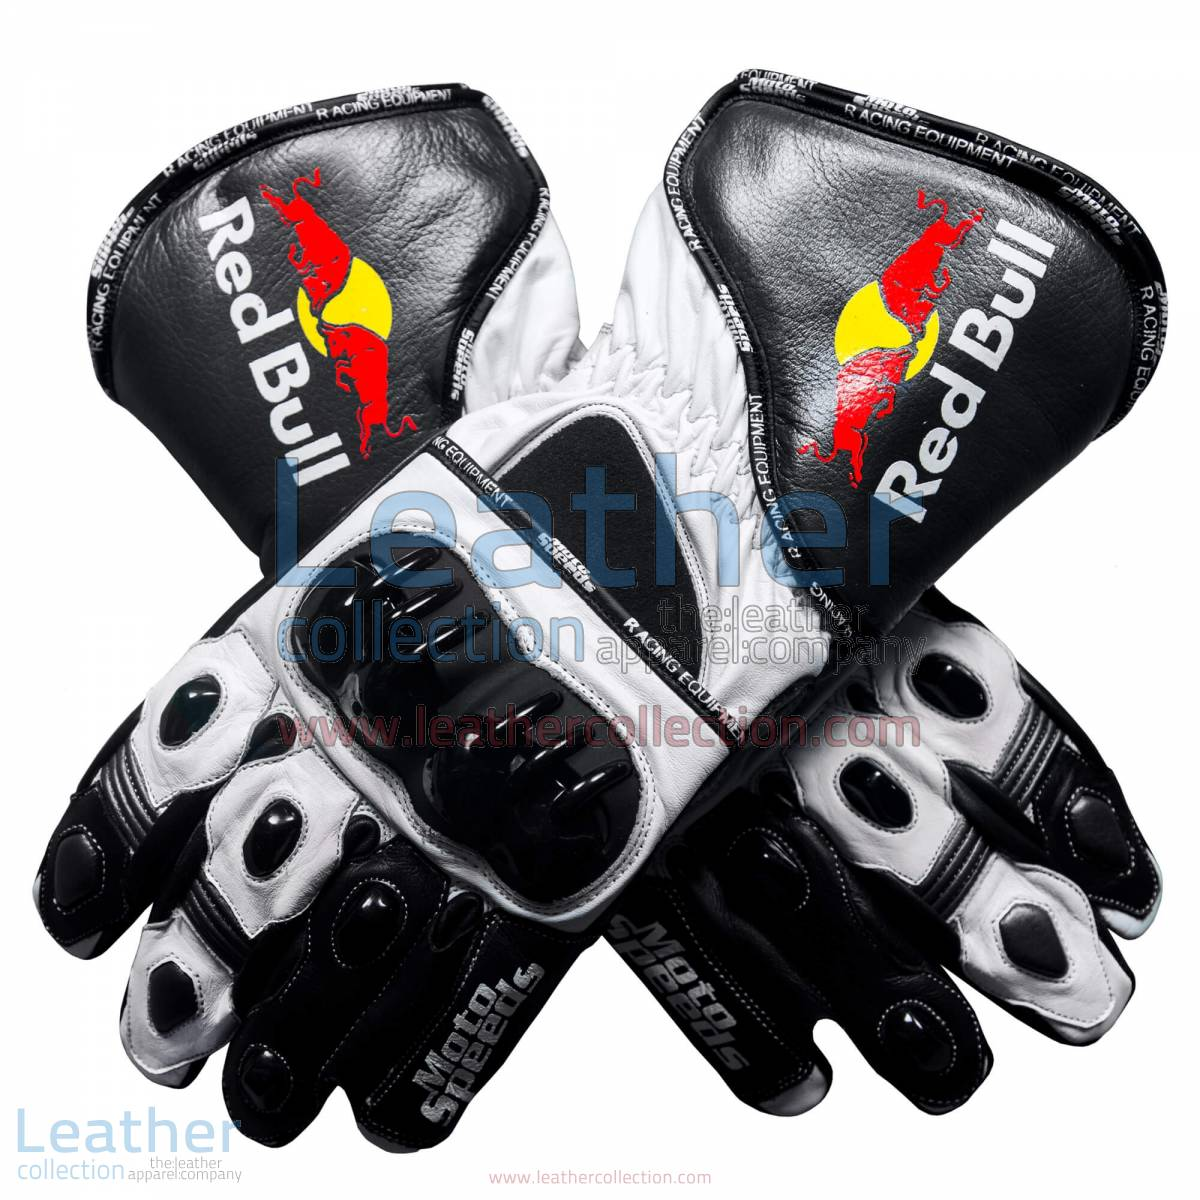 Red Bull Motorcycle Leather Gloves